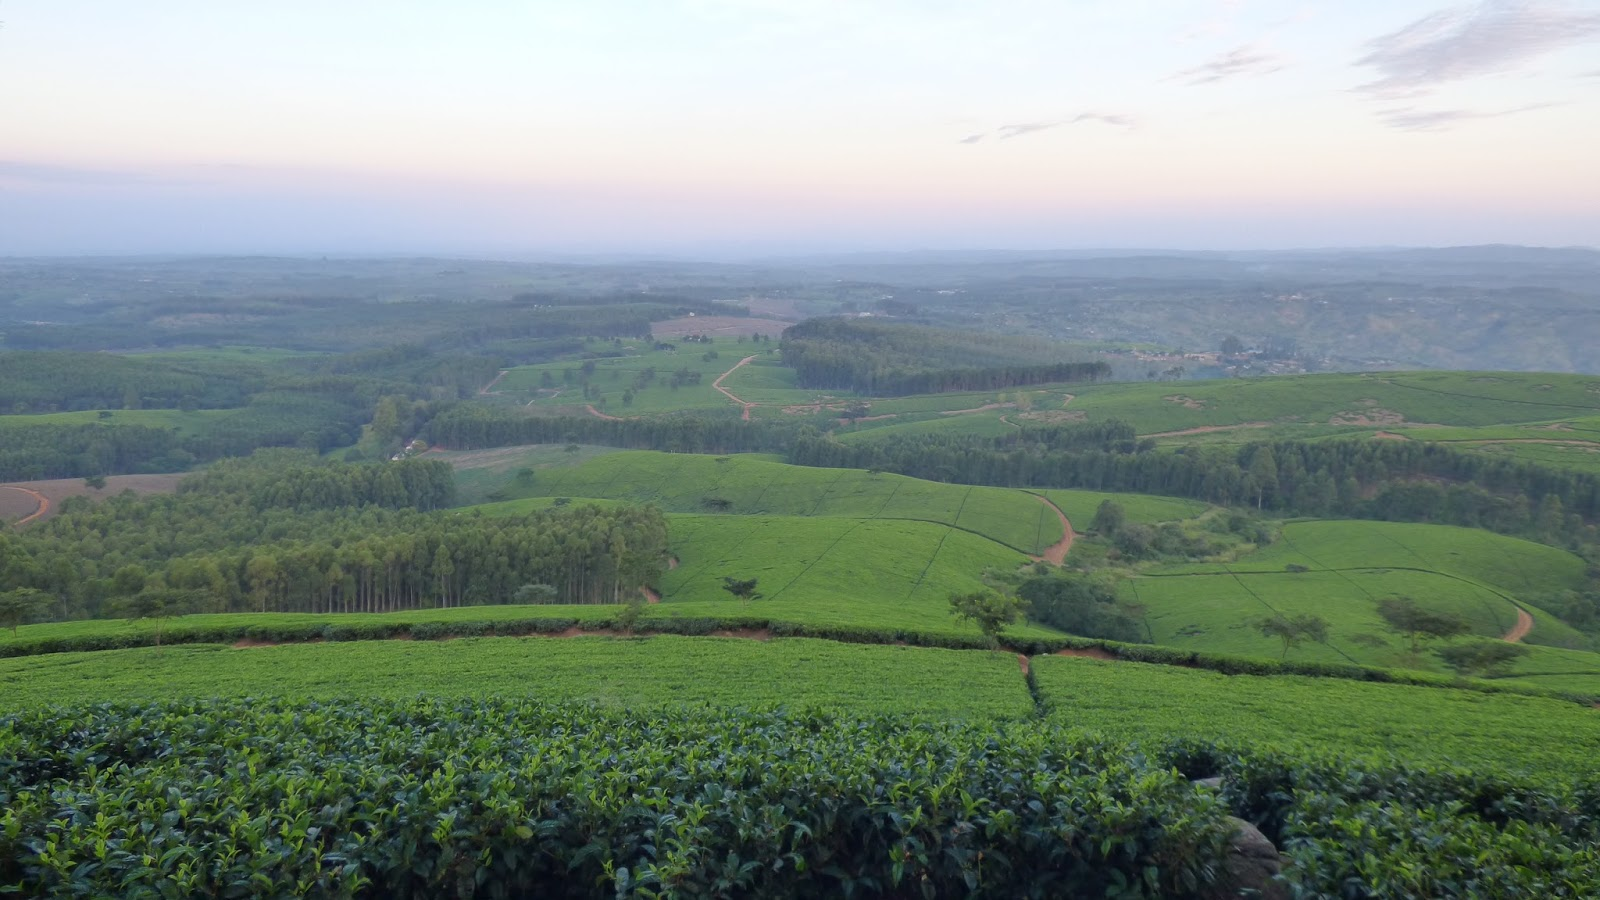 Views from 1200m, looking over the Satemwa Tea Estate, Malawi